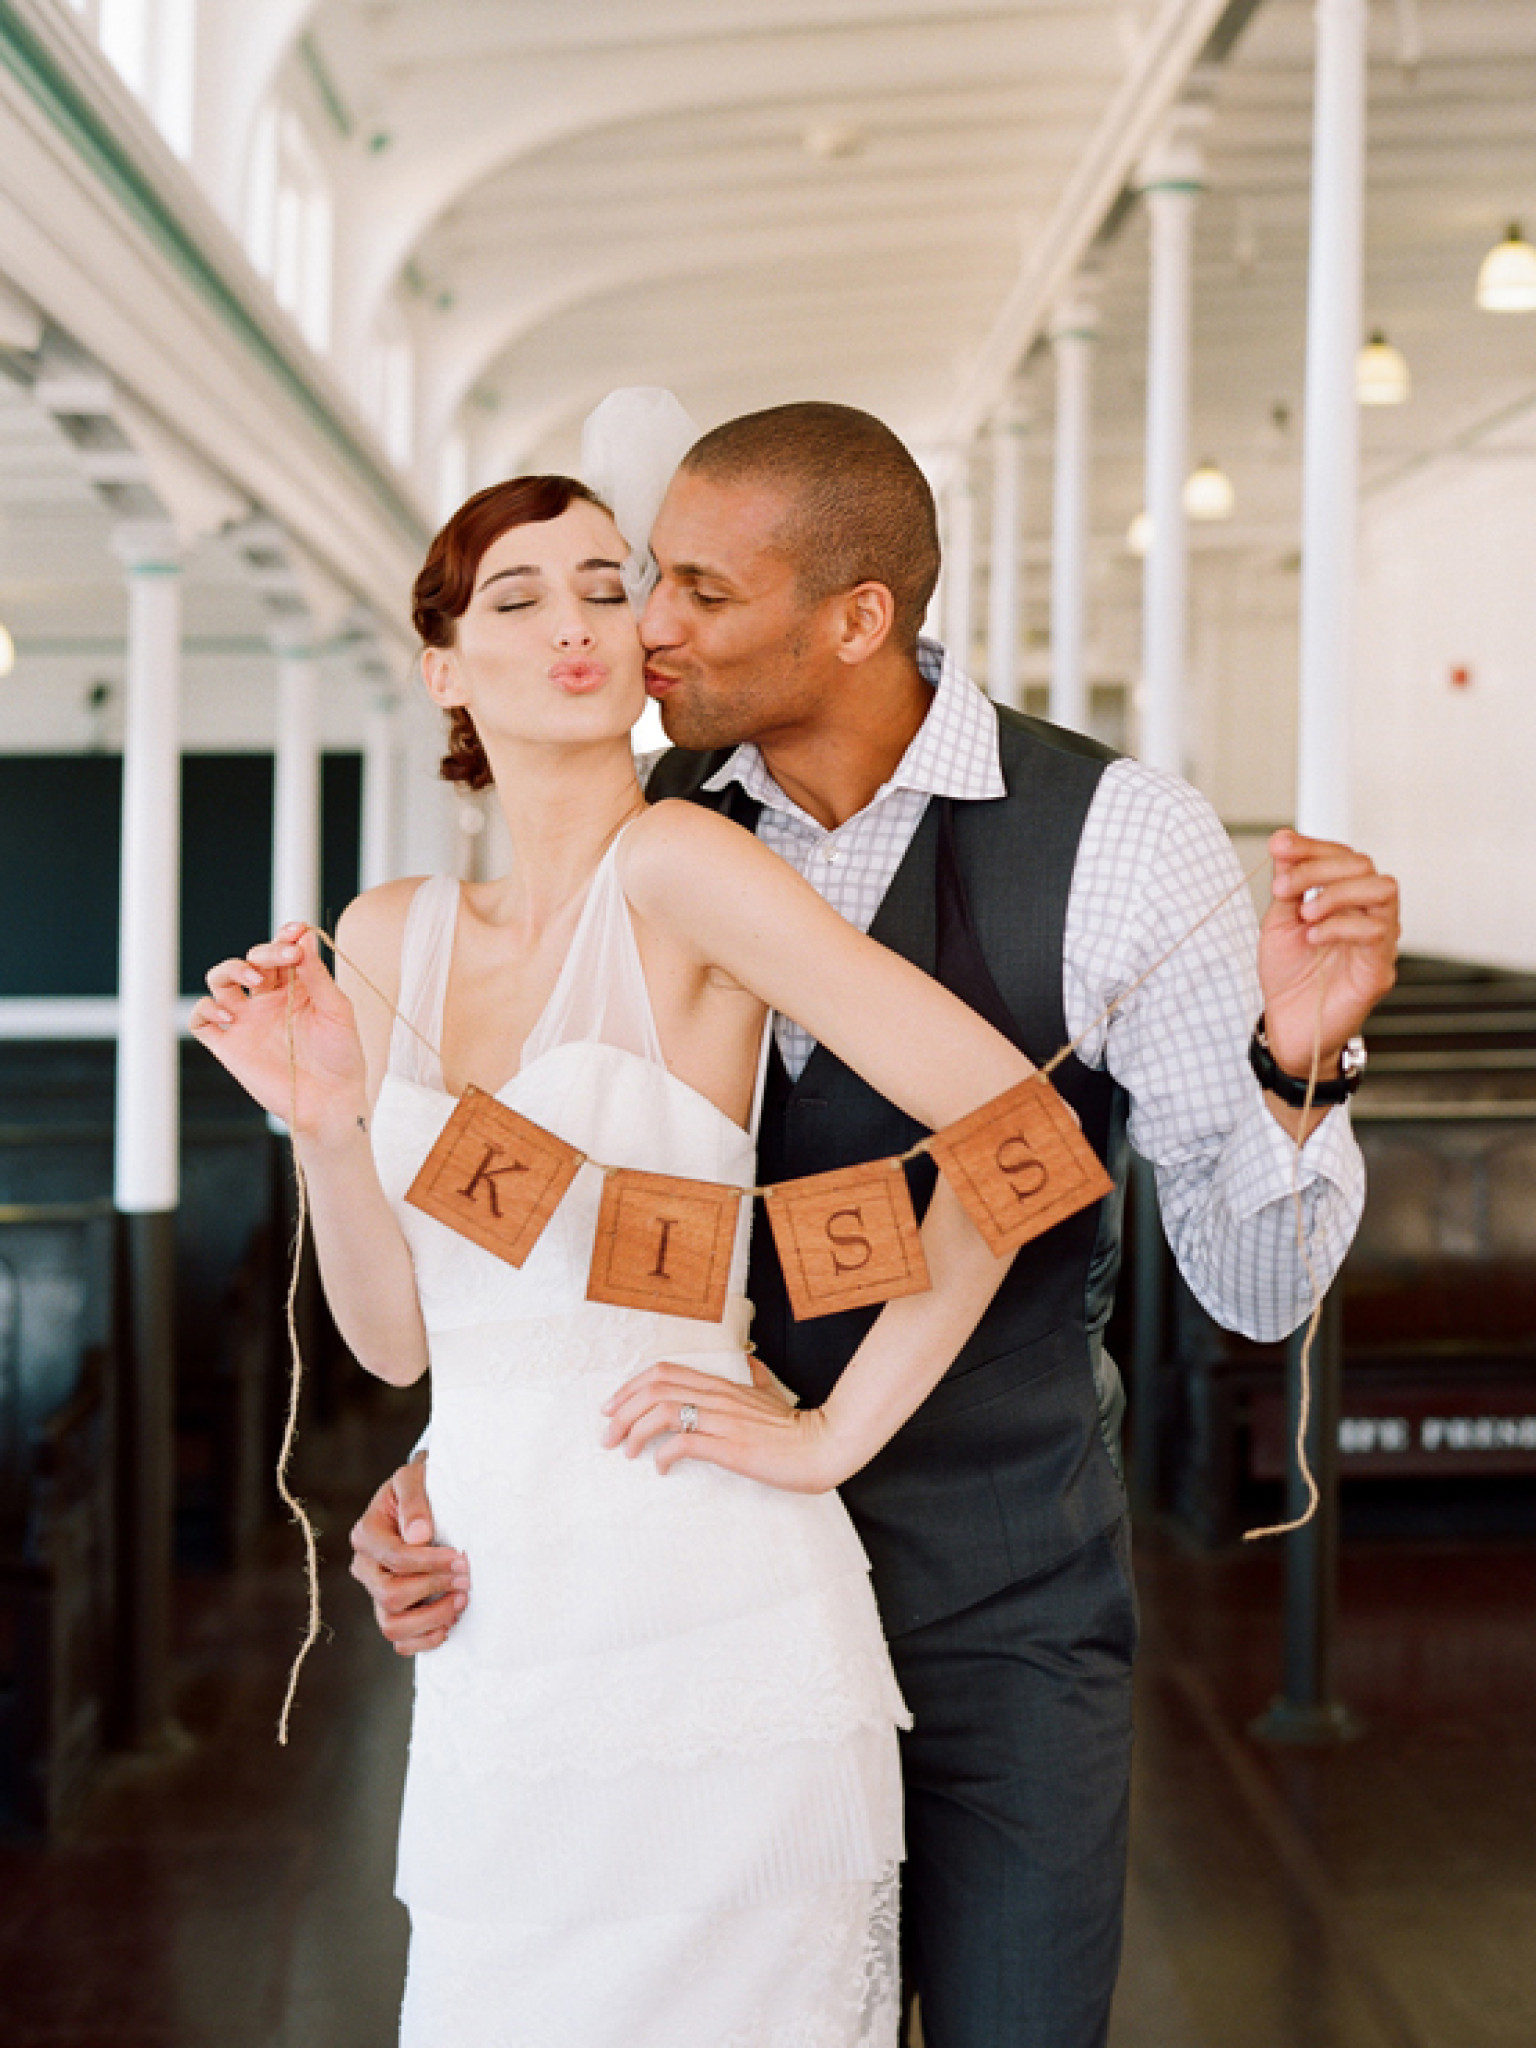 Old Hollywood Wedding Inspiration (PHOTOS) | HuffPost